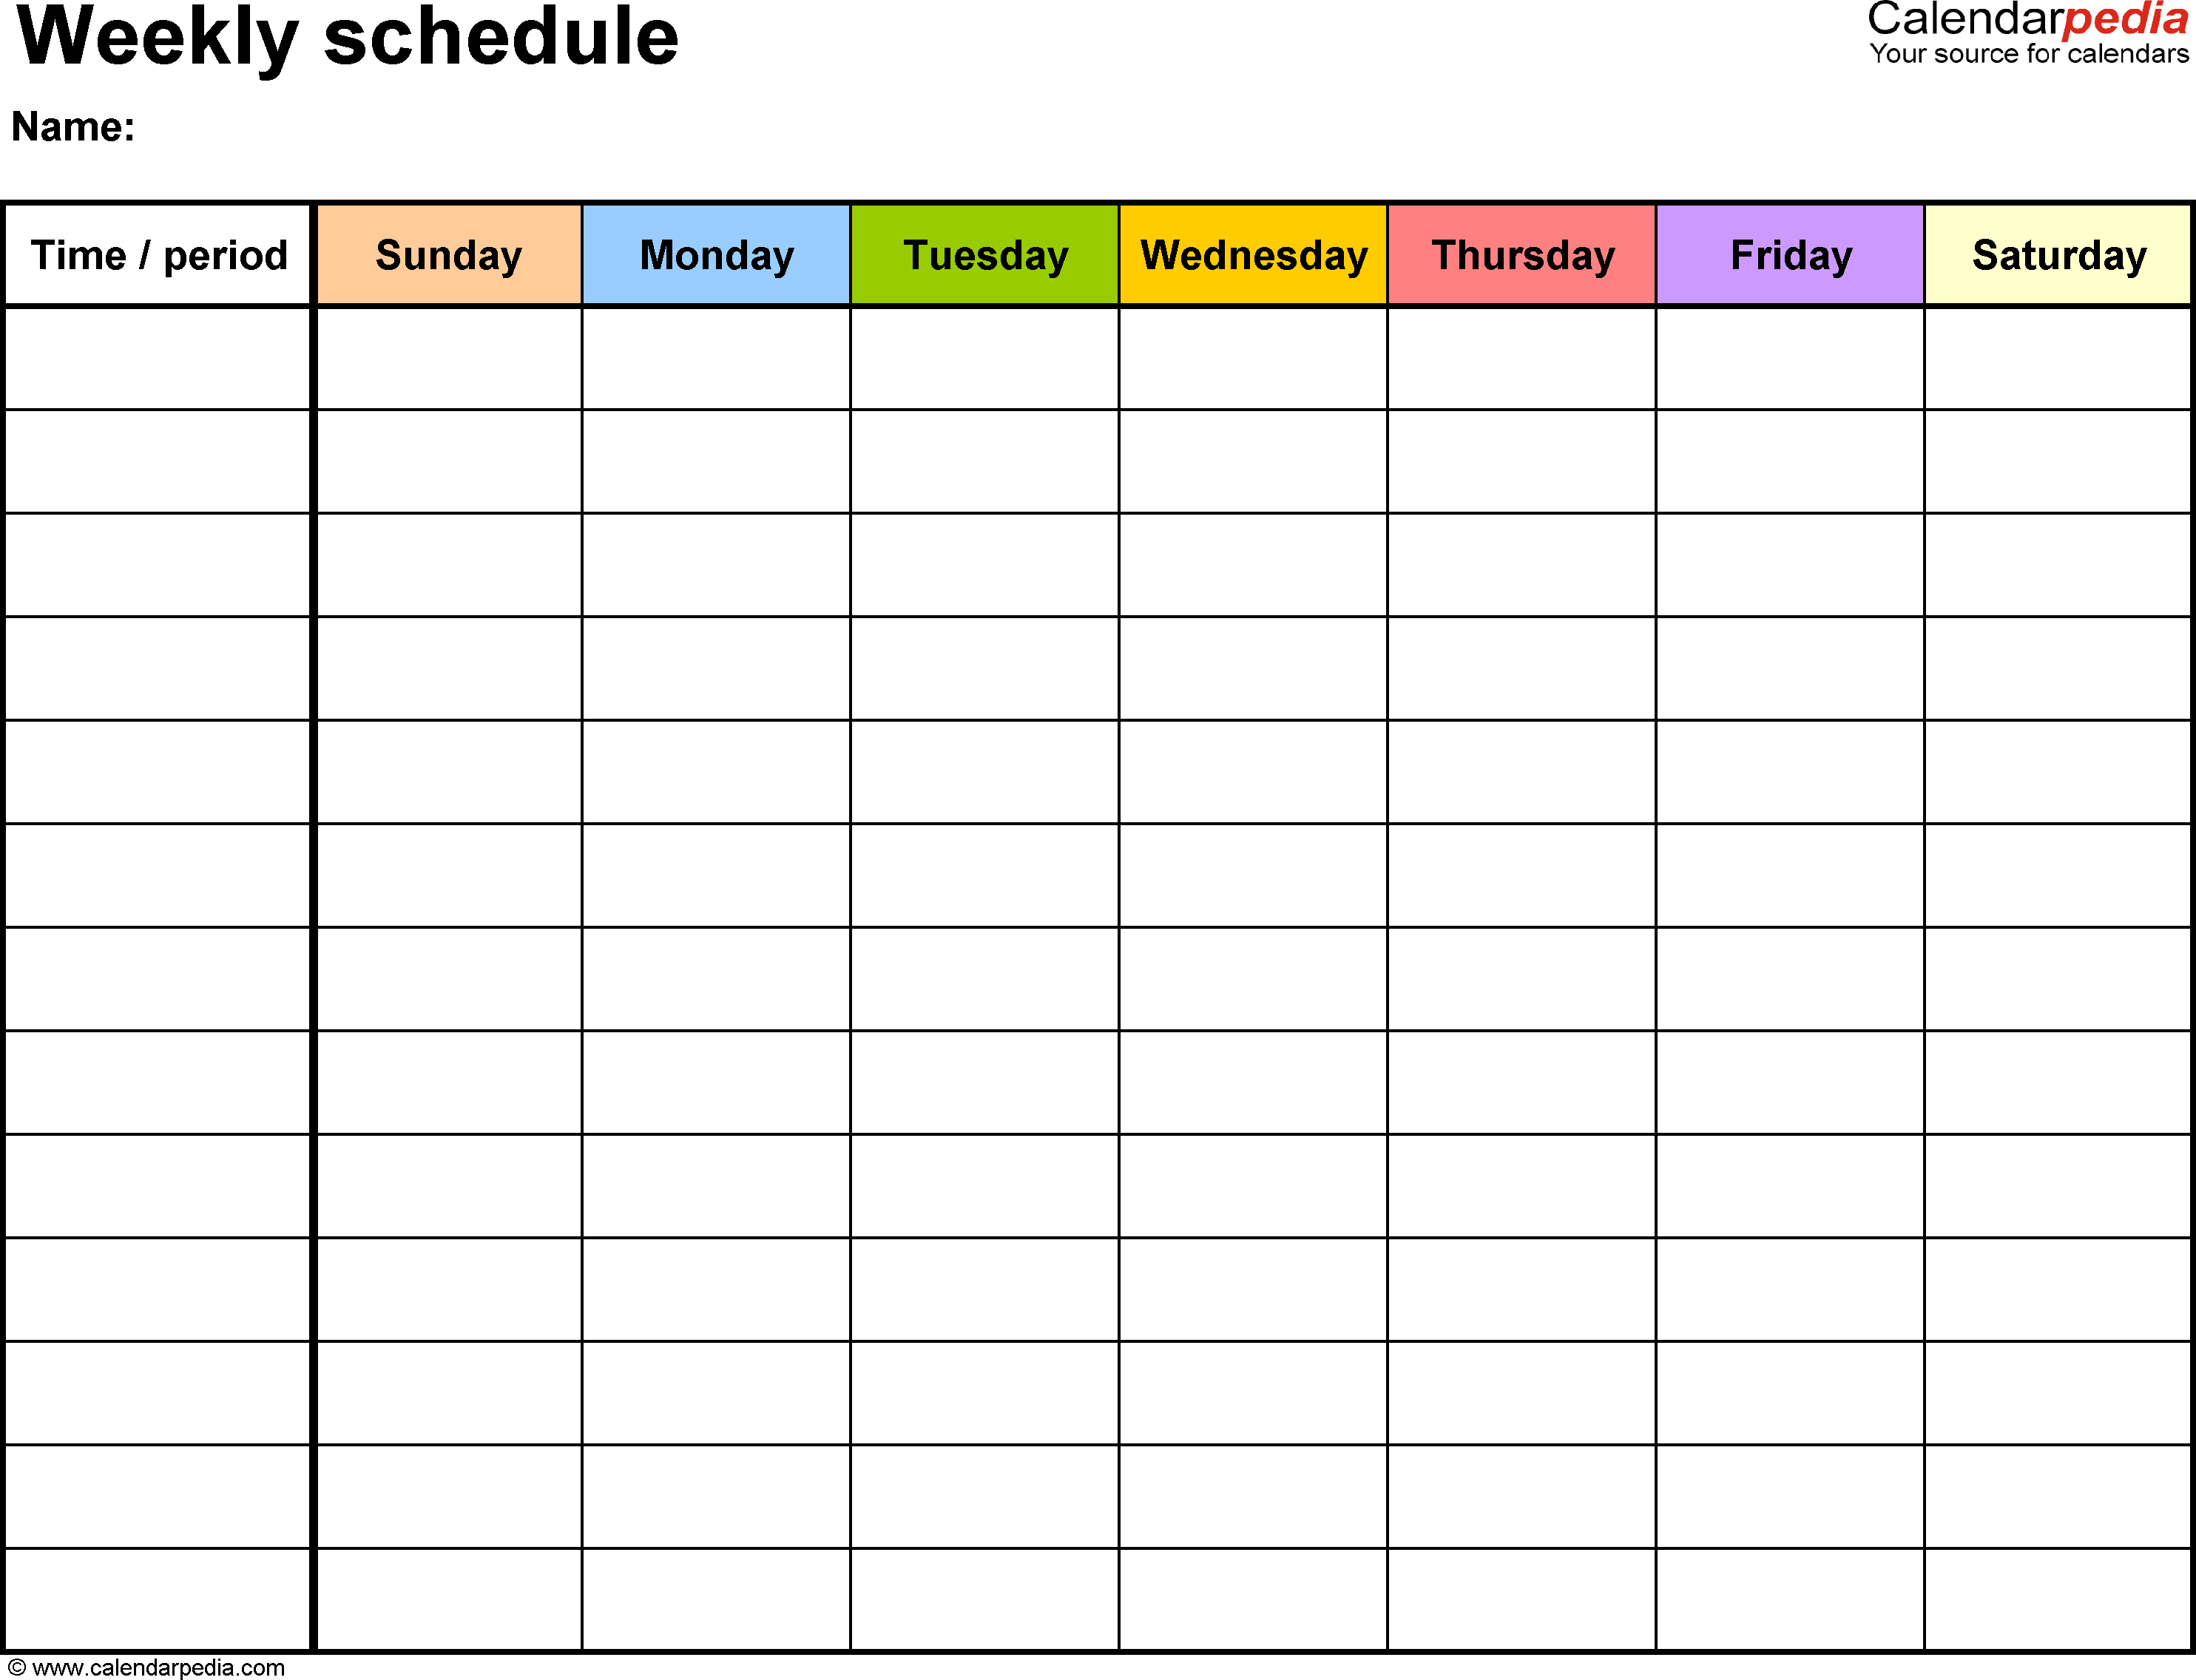 Free Weekly Schedule Templates For Excel - 18 Templates within 6 Week Work Schedule Template